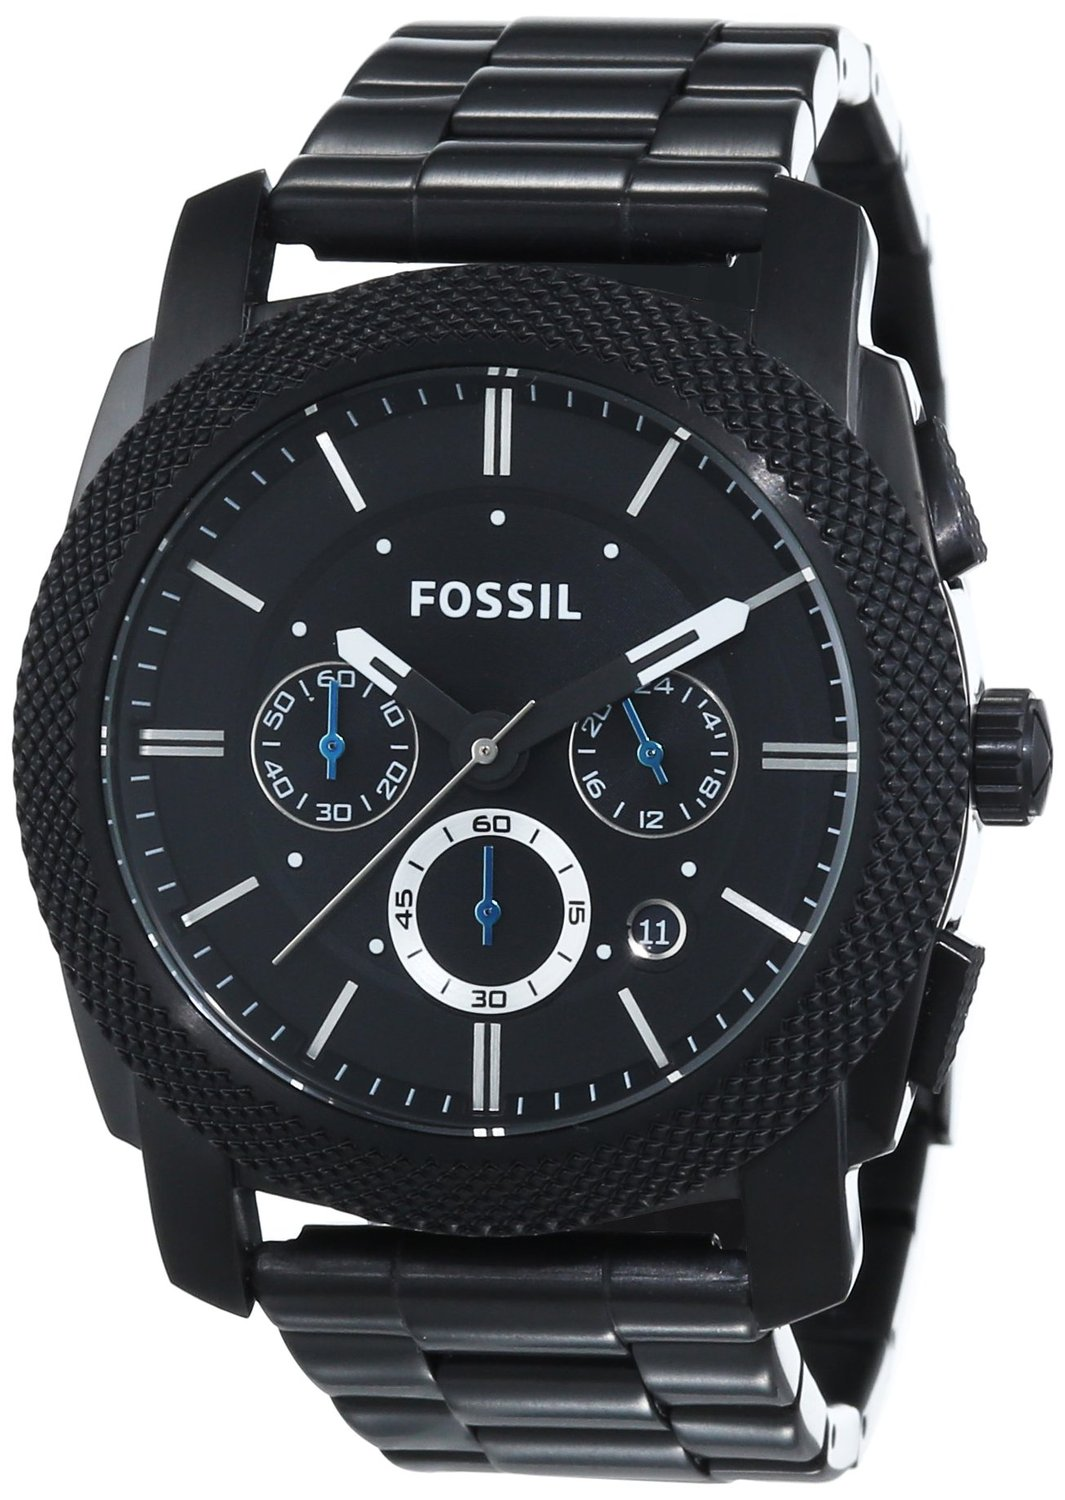 watches kookybox gift wearable as him a fossil modern favorite tech for